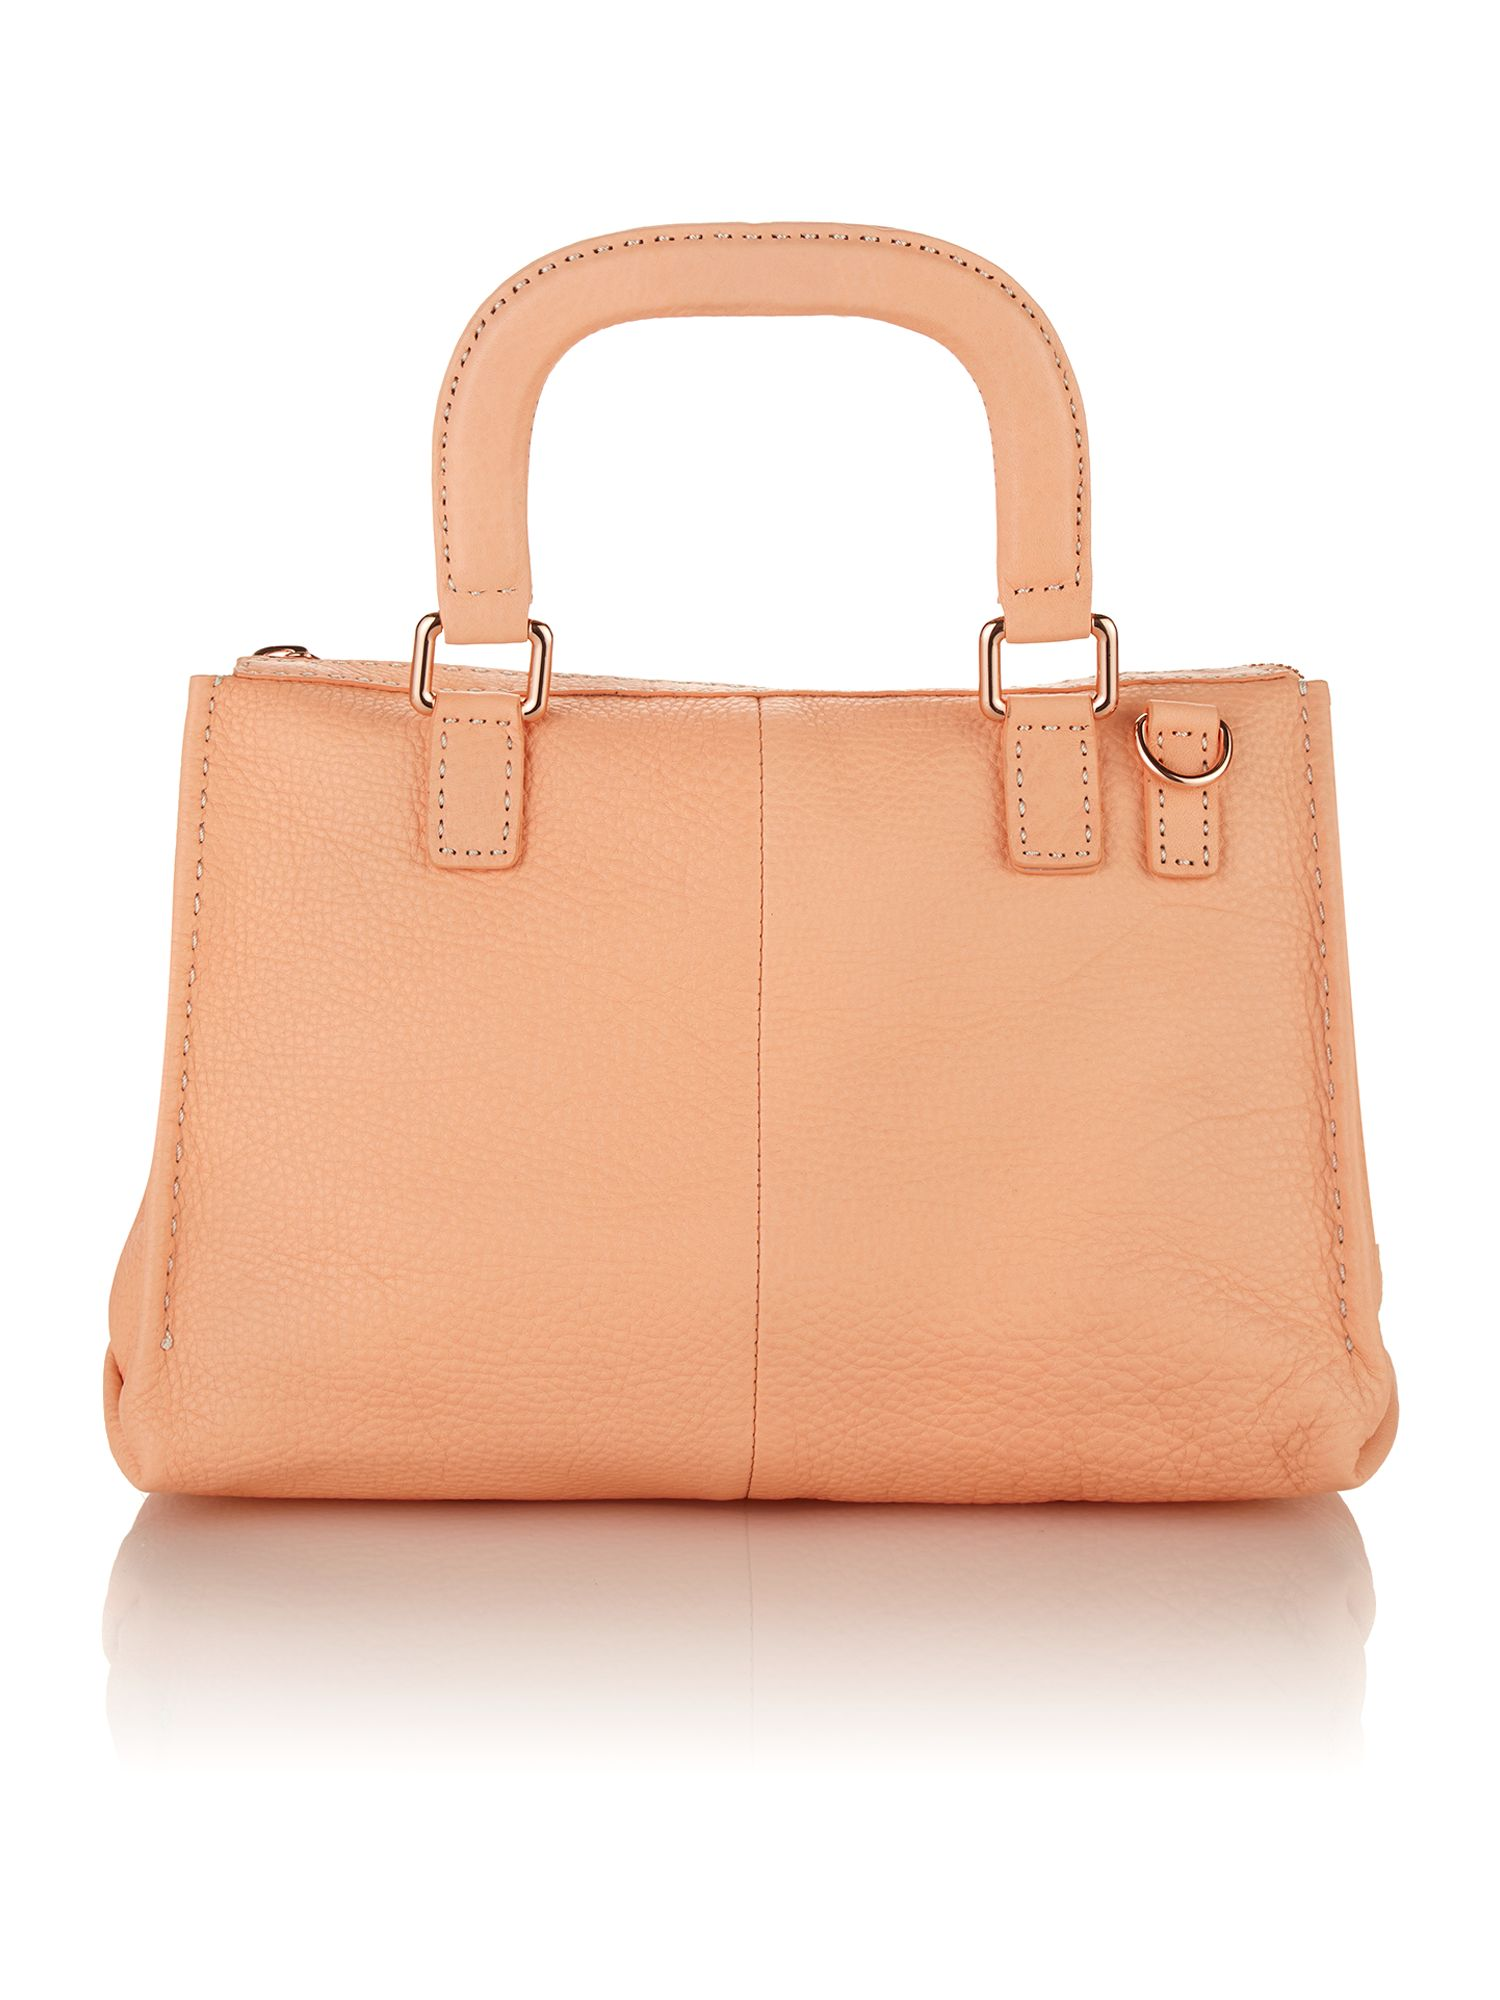 Large orange cross body satchel